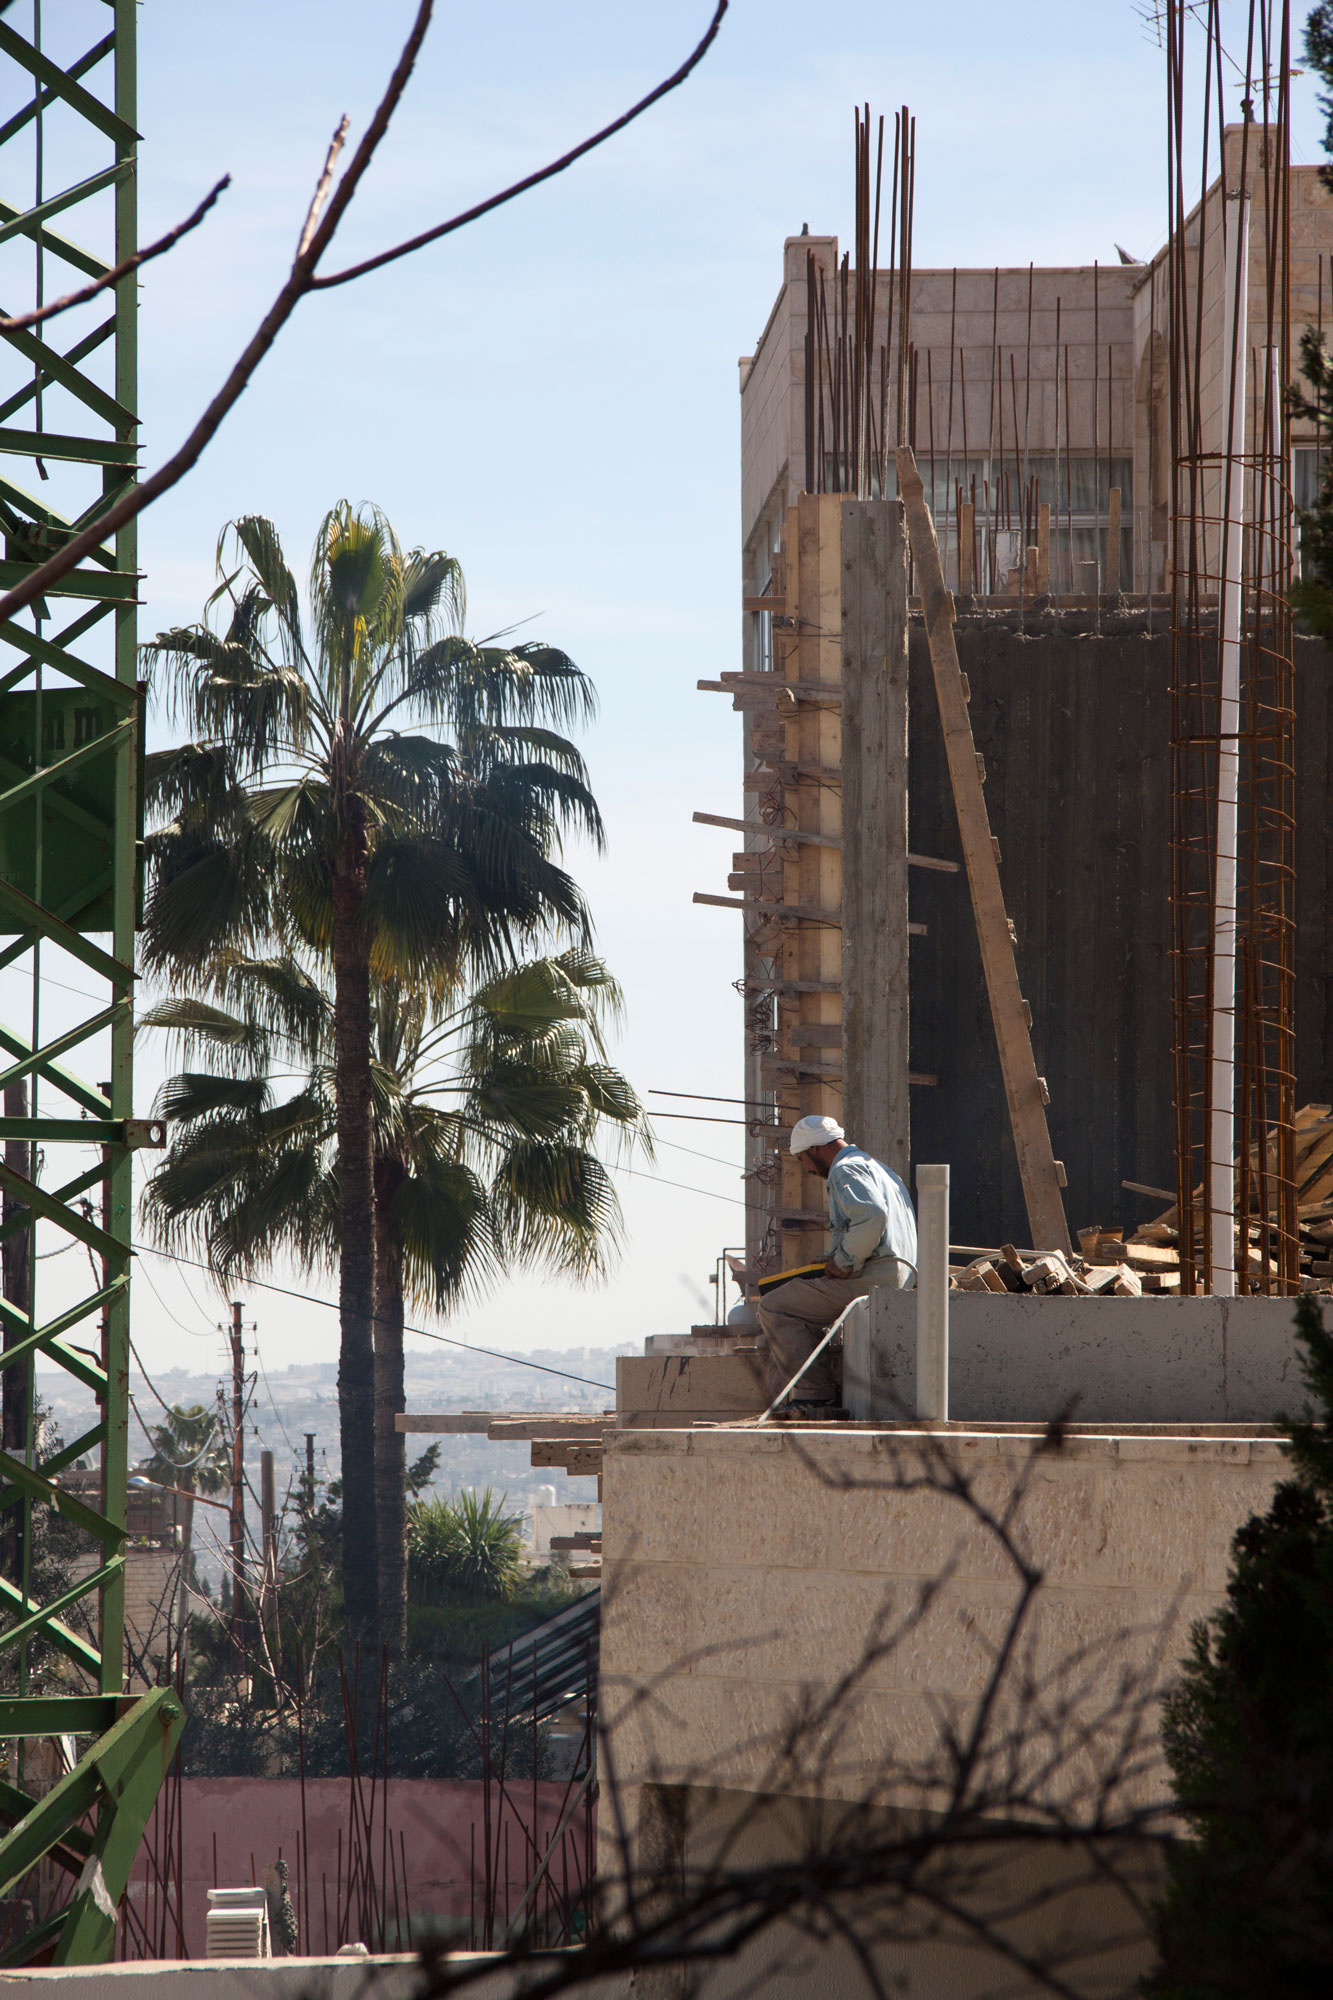 Construction in Jordan's capital city of Amman is booming. Last year around 2000 houses were built.